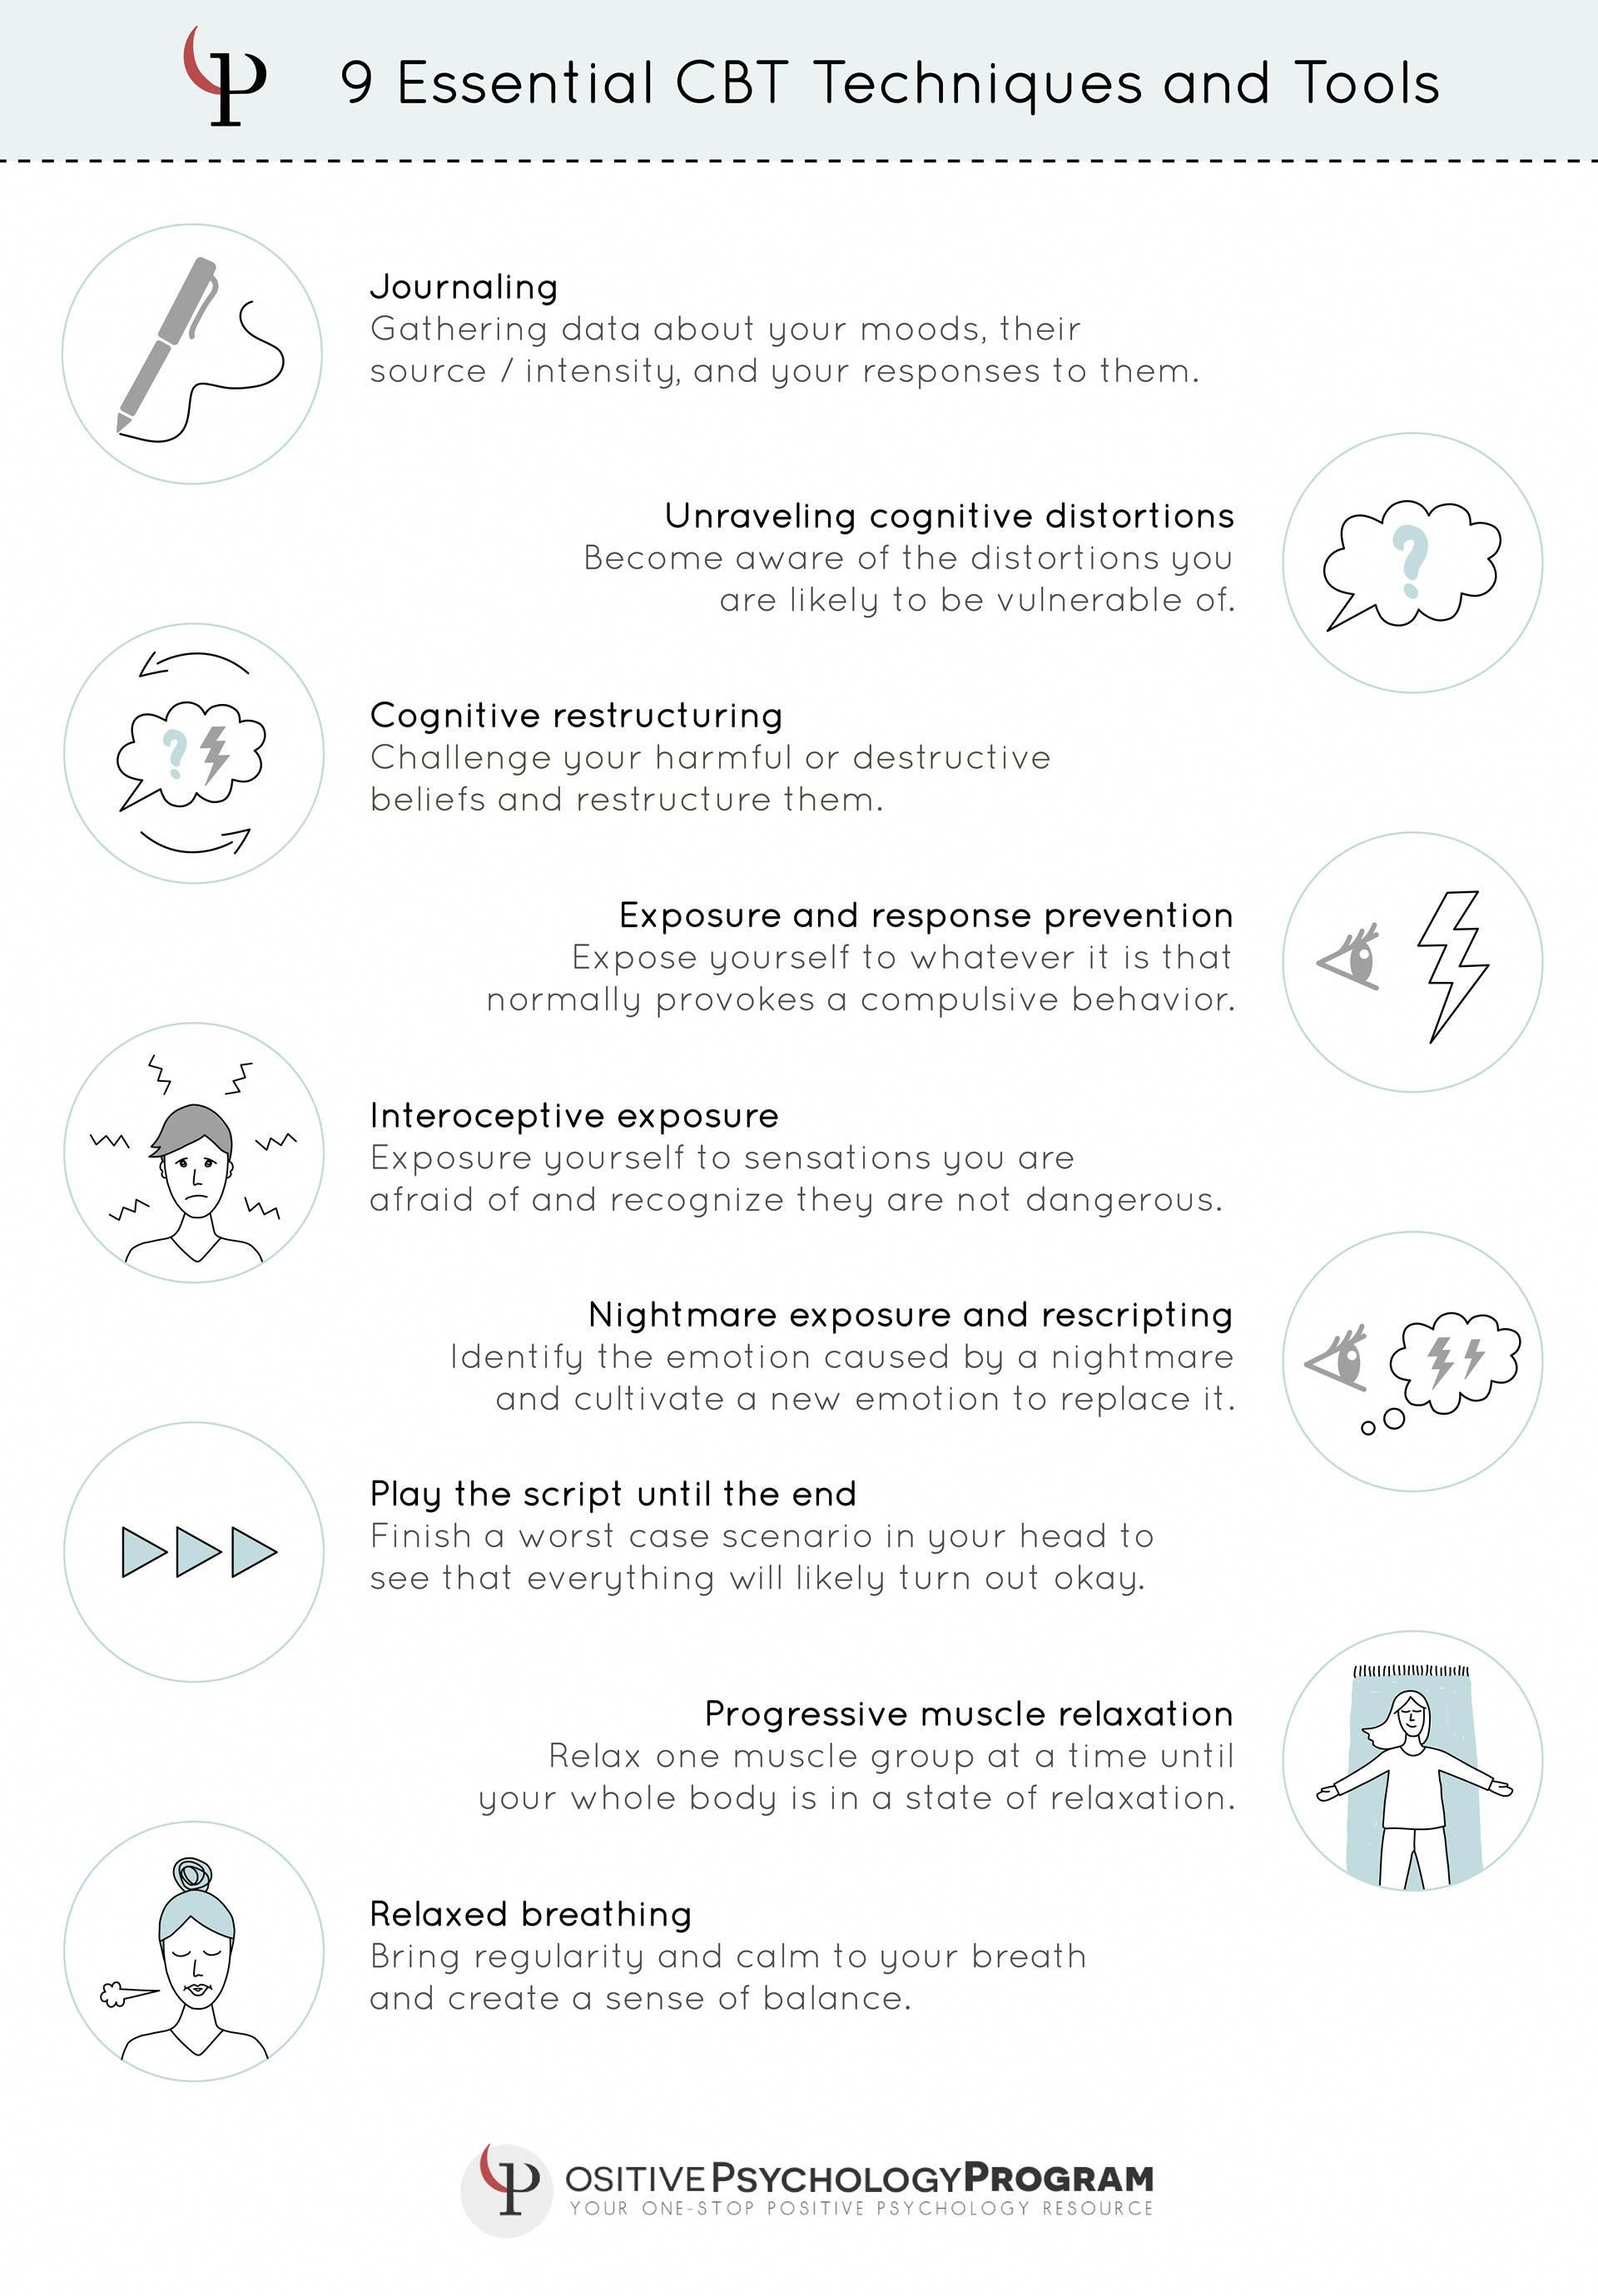 Cbt Techniques And Tools Infographic Cbttherapy Cbt Techniques Cognitive Behavioral Therapy Techniques Cbt Therapy